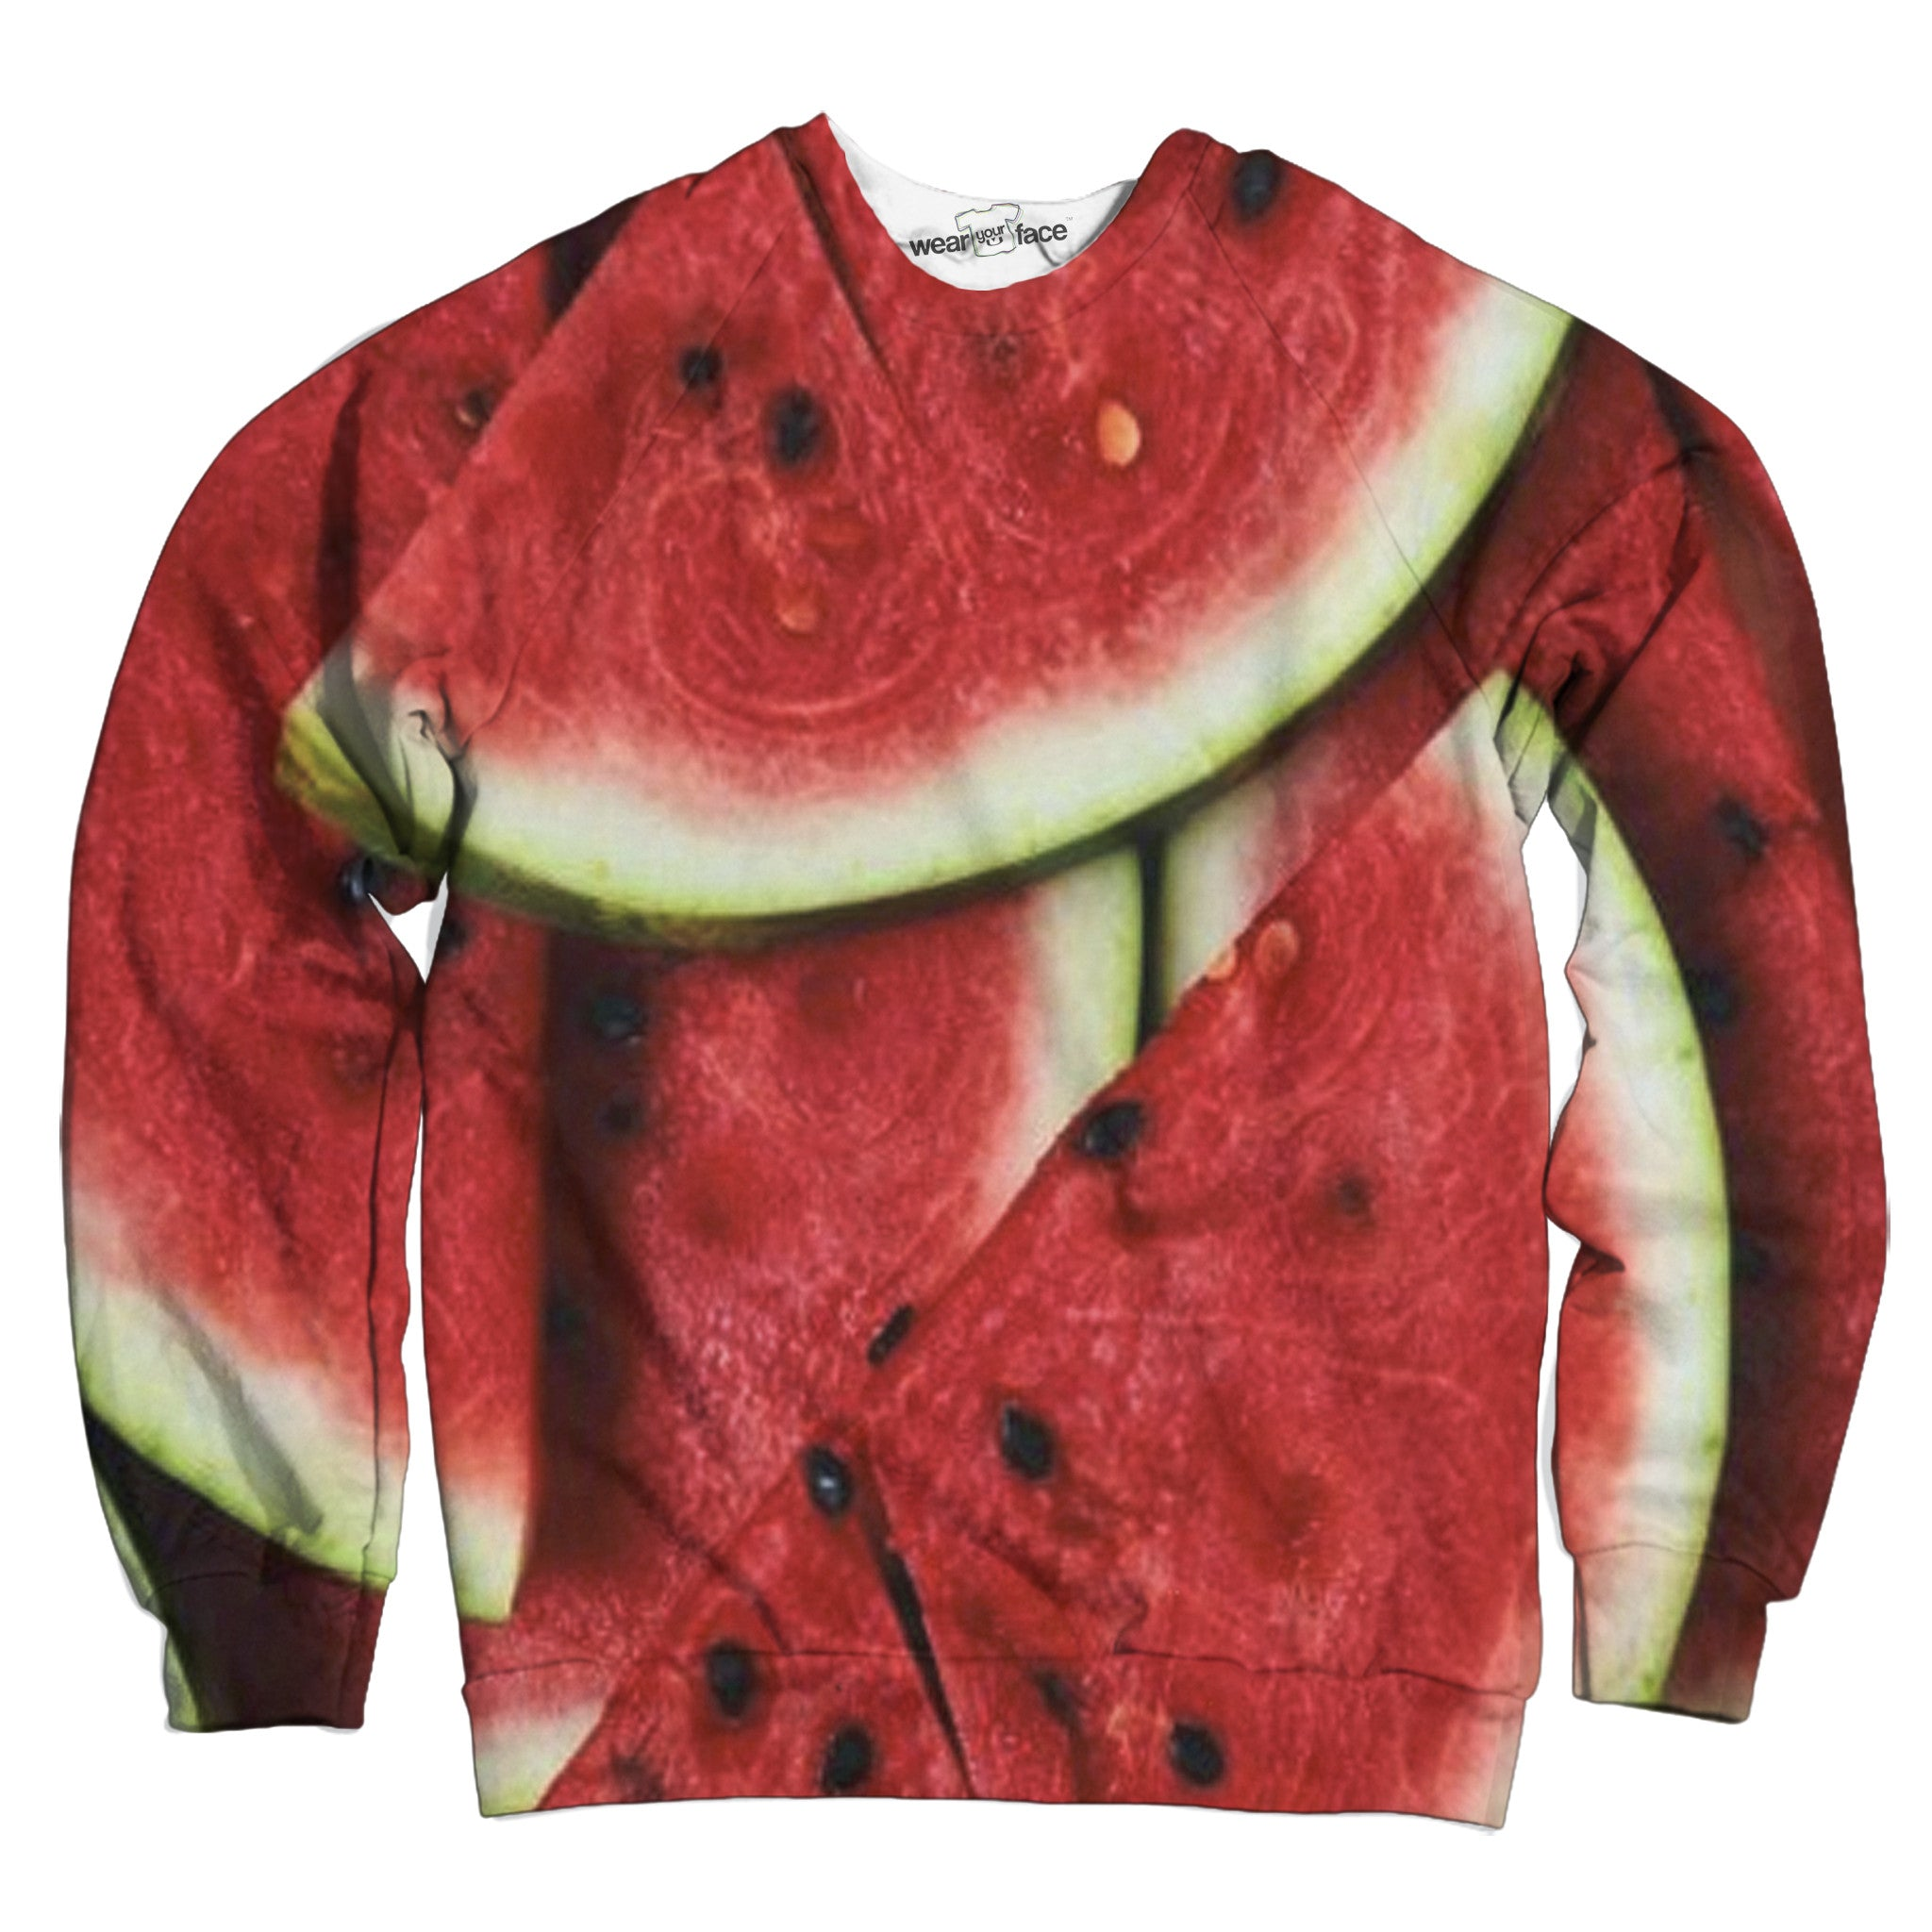 The Watermelon Sweatshirt